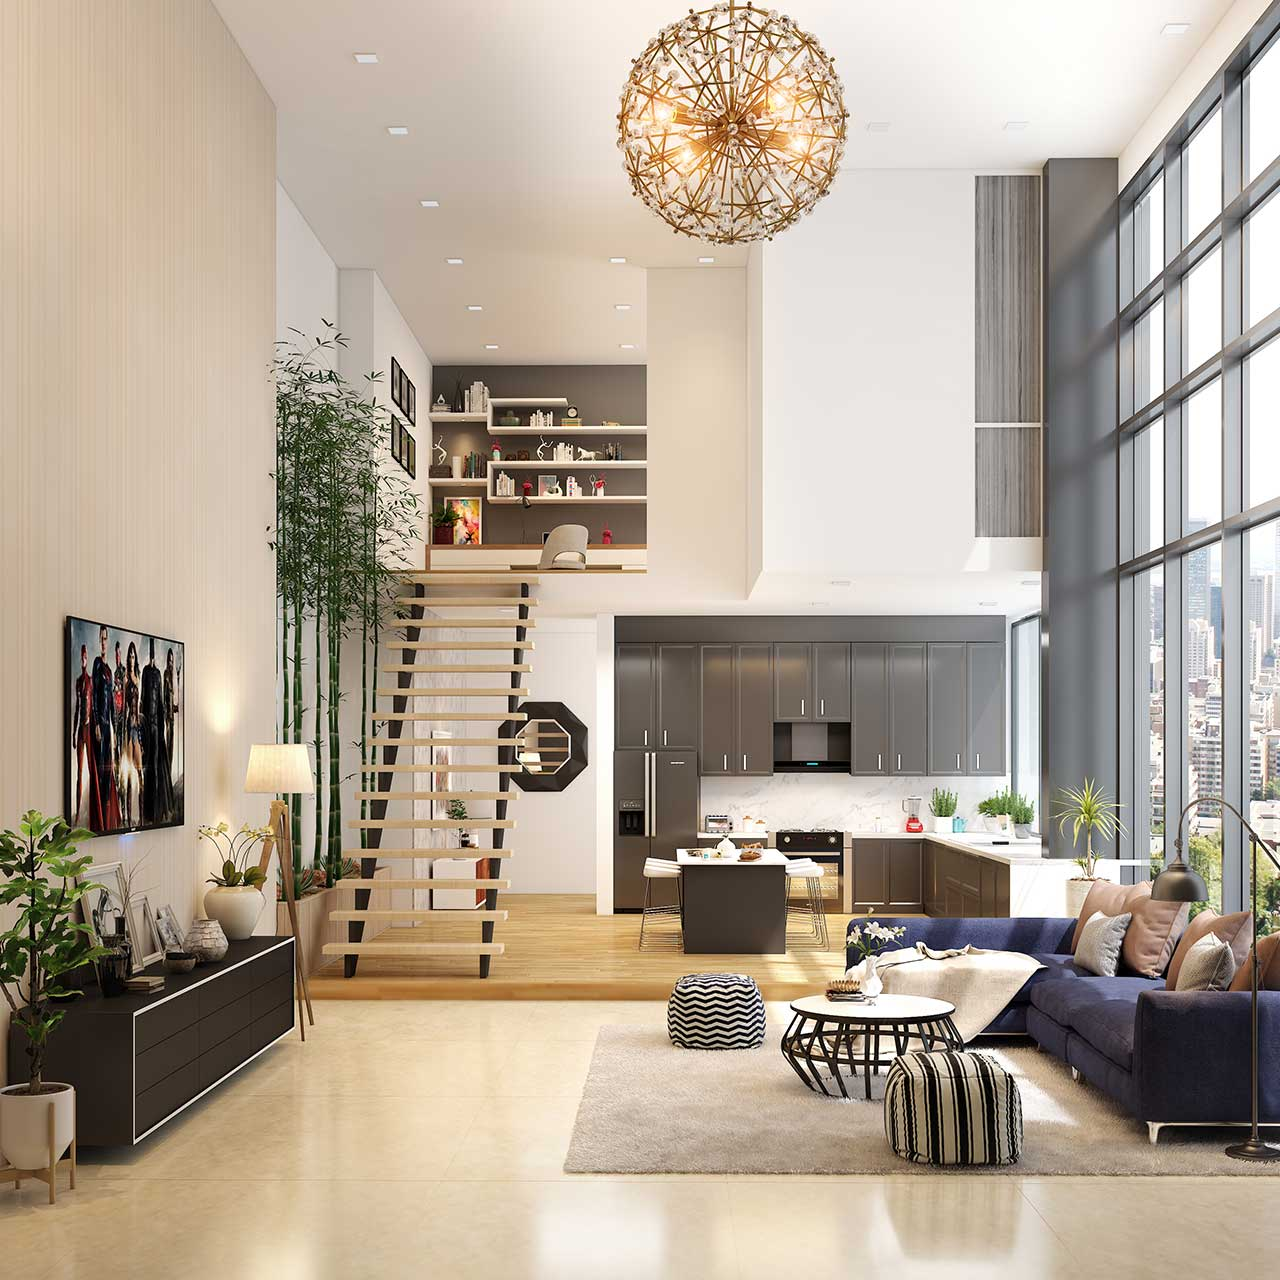 8 lighting ideas for your home design